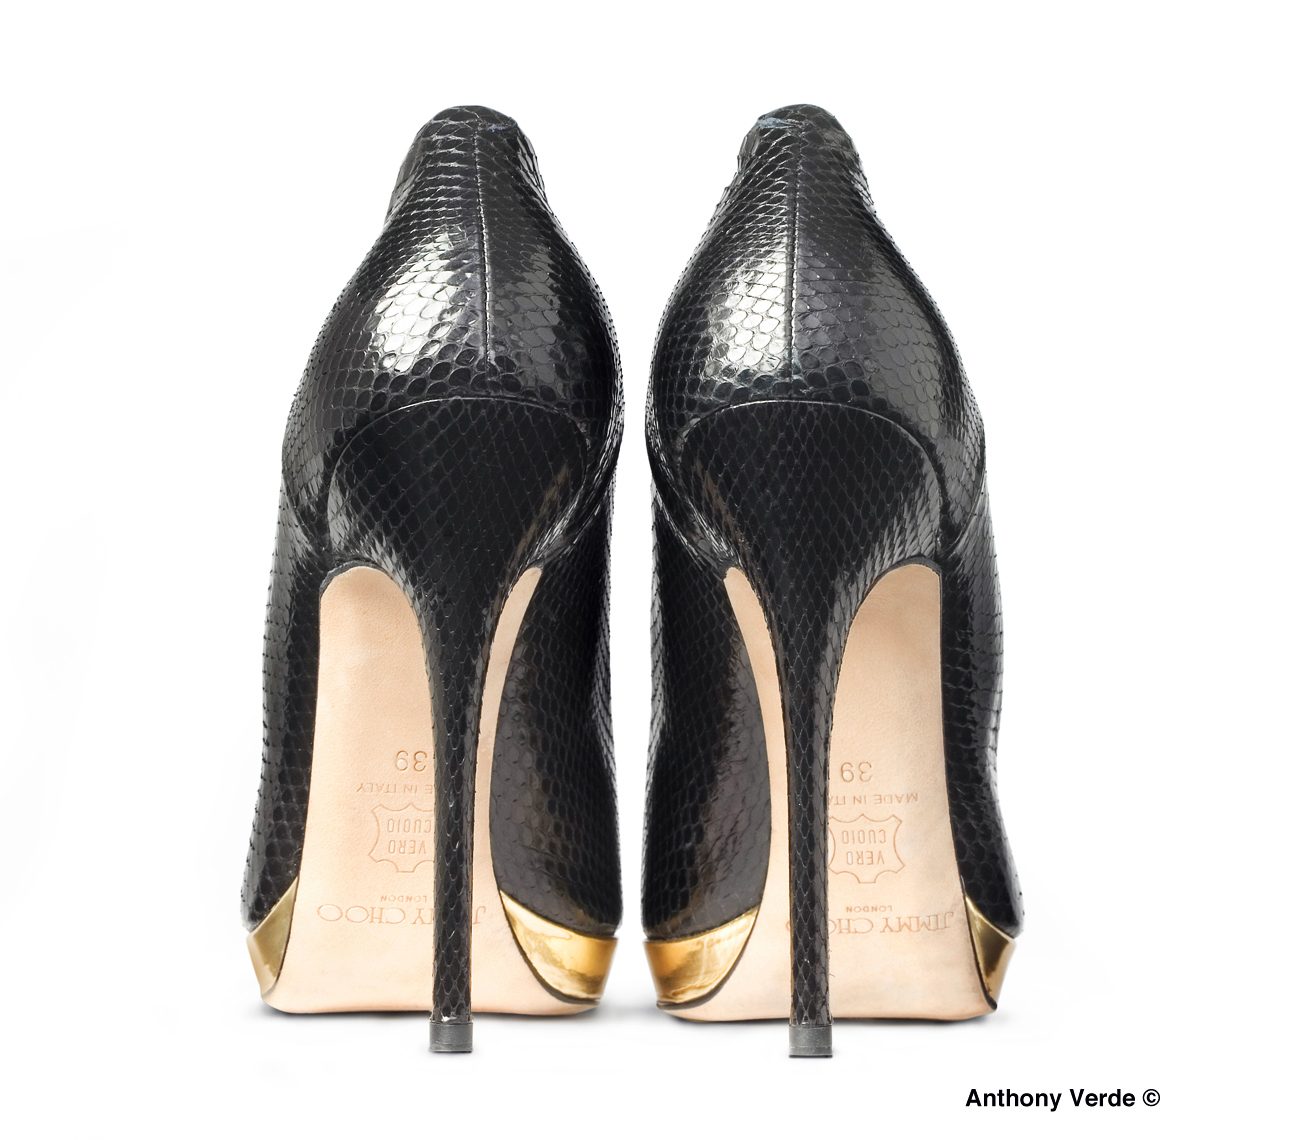 jimmy-choo-heels-product-photography